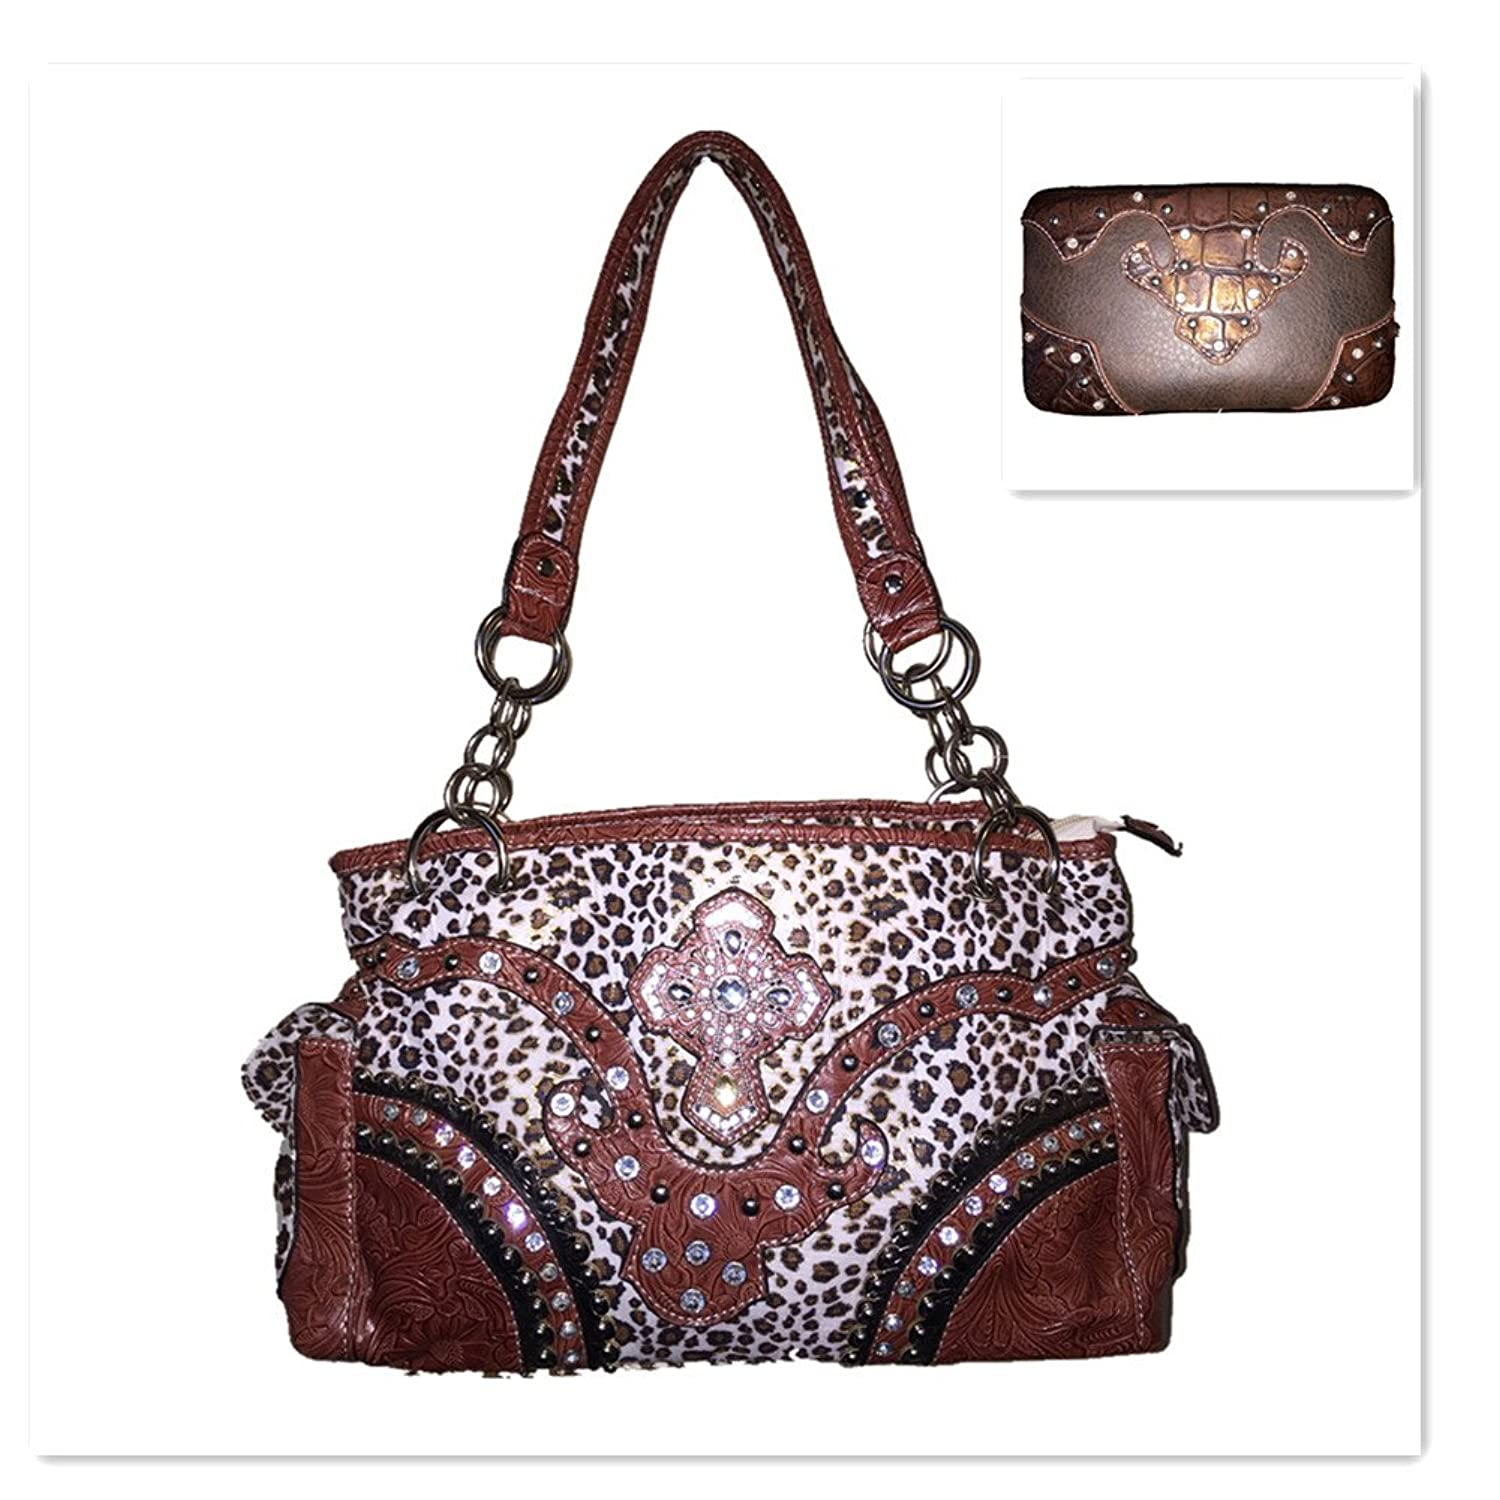 Leopard Cow Girl Rhinestone Cross Shoulder Handbag Purse and Matching Wallet A1242 in Brown